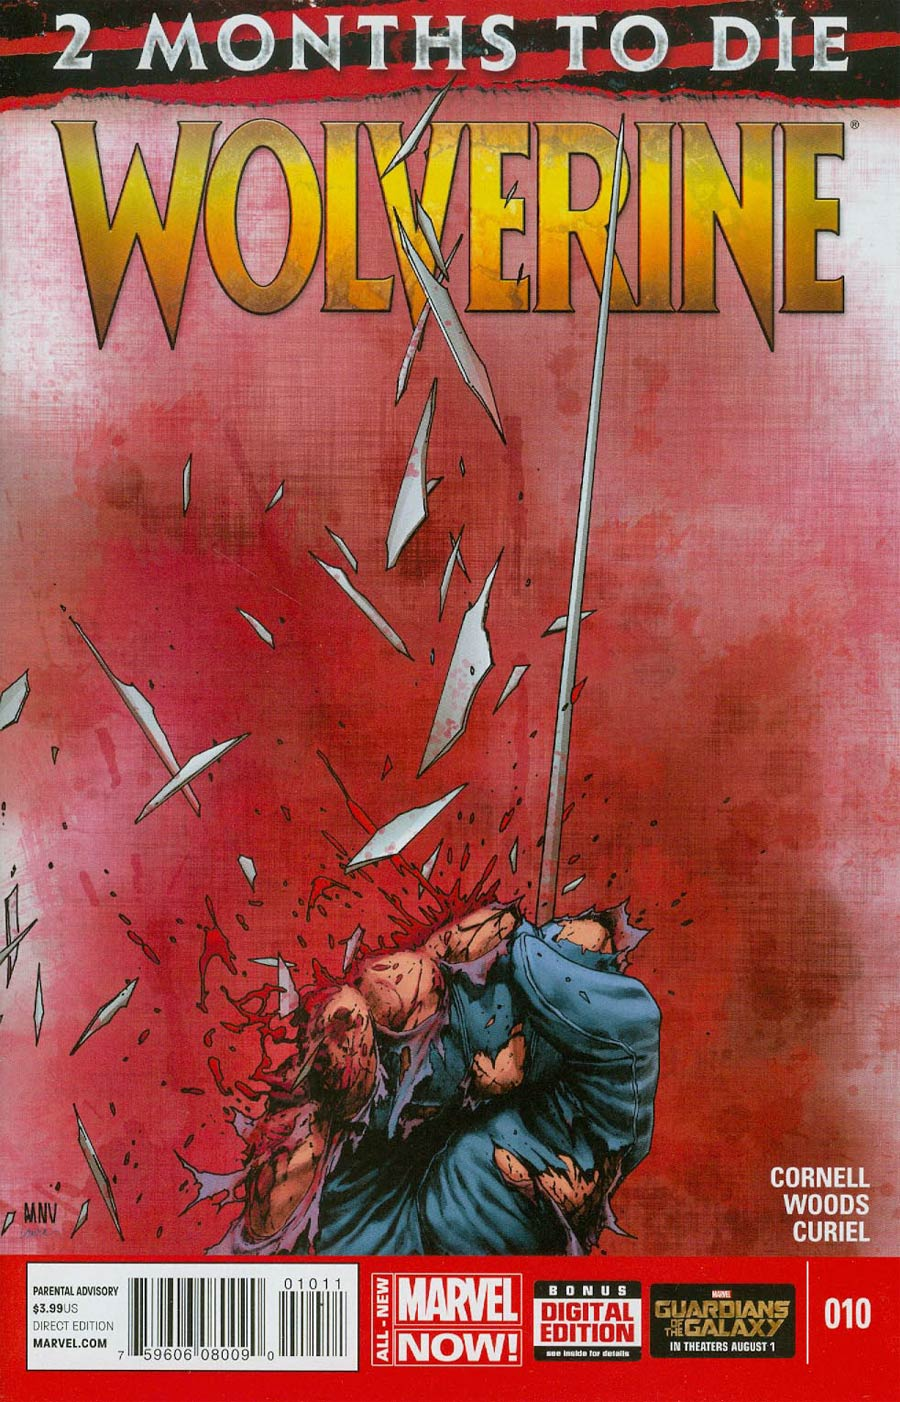 Wolverine Vol 6 #10 Cover A 1st Ptg Regular Steve McNiven Cover (3 Months To Die Part 3)